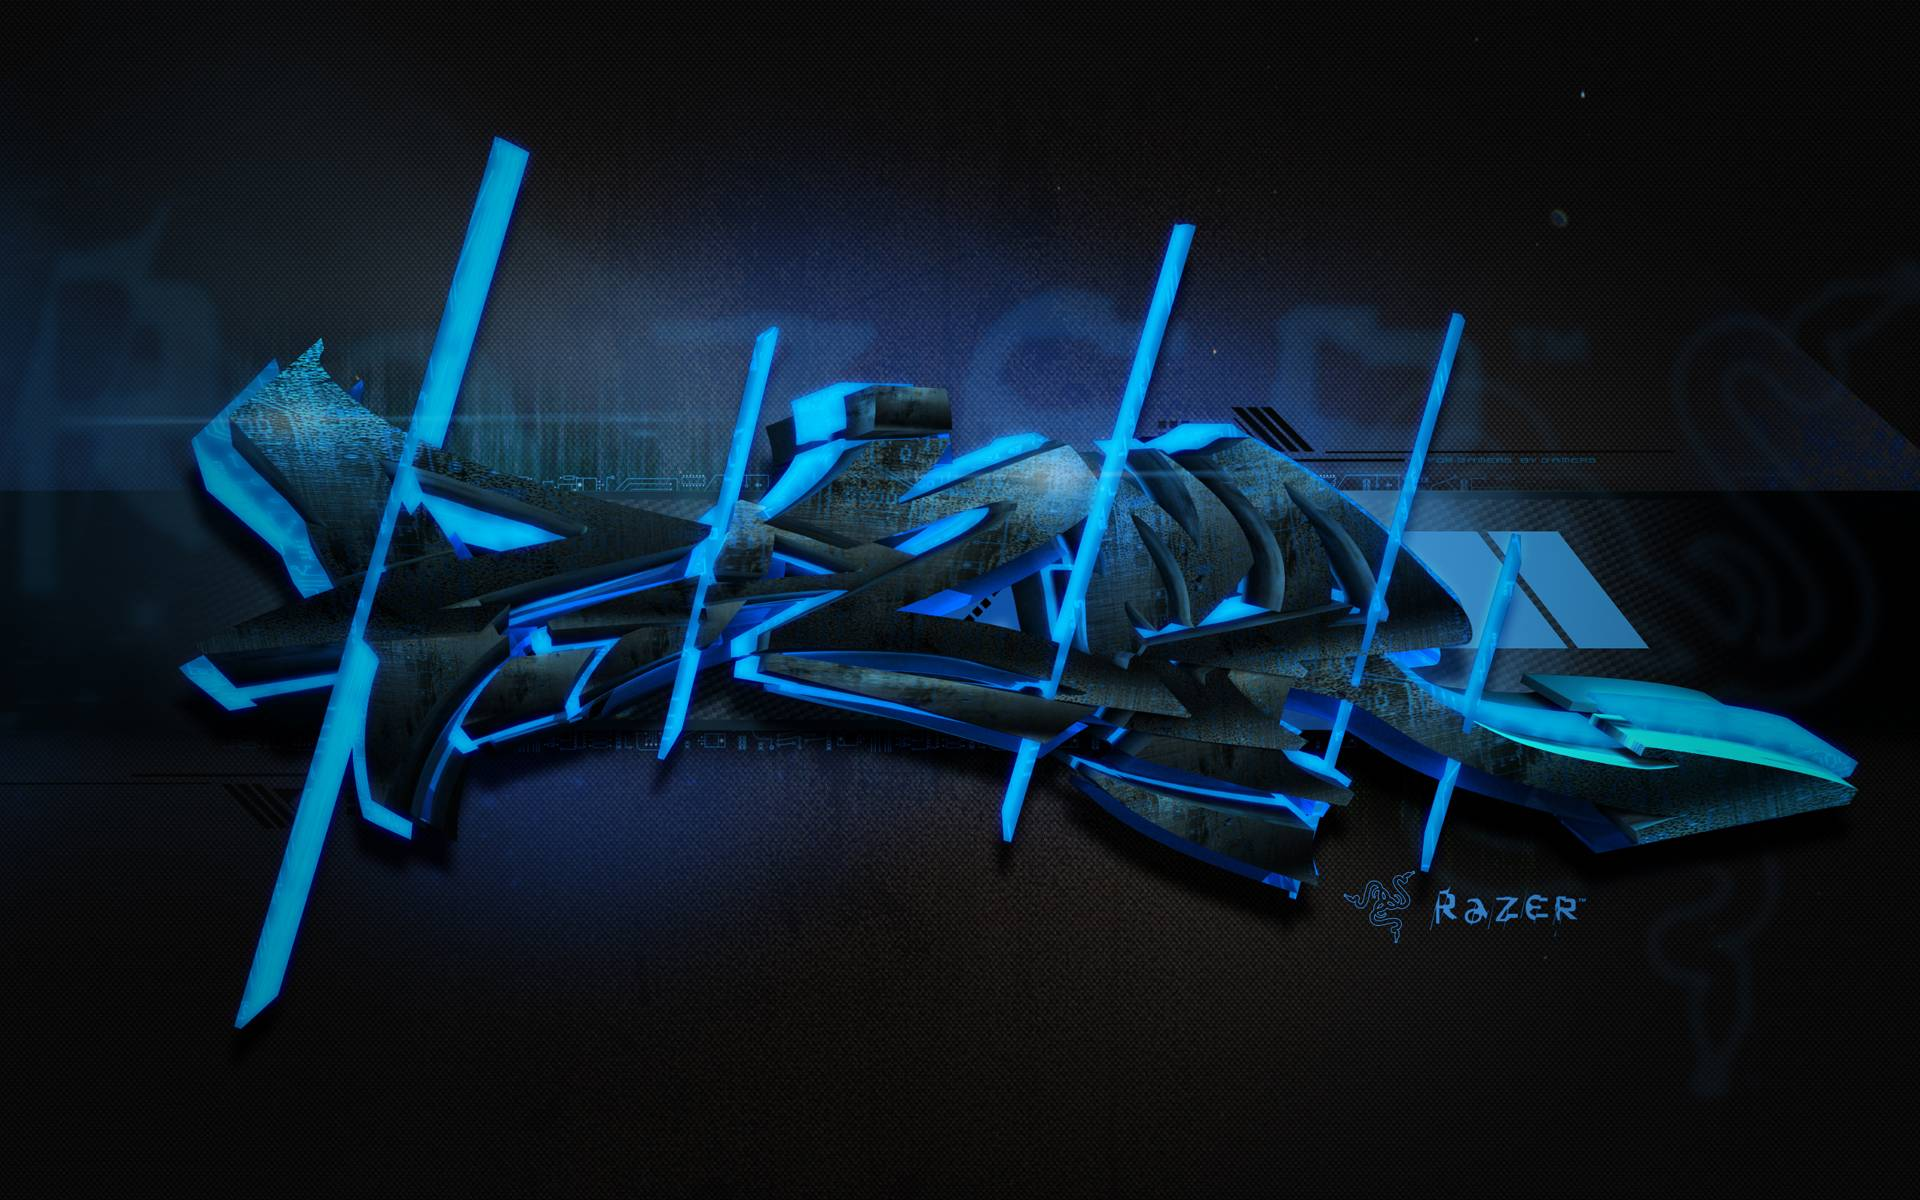 Razer gaming wallpapers wallpaper cave for Graffiti wallpaper